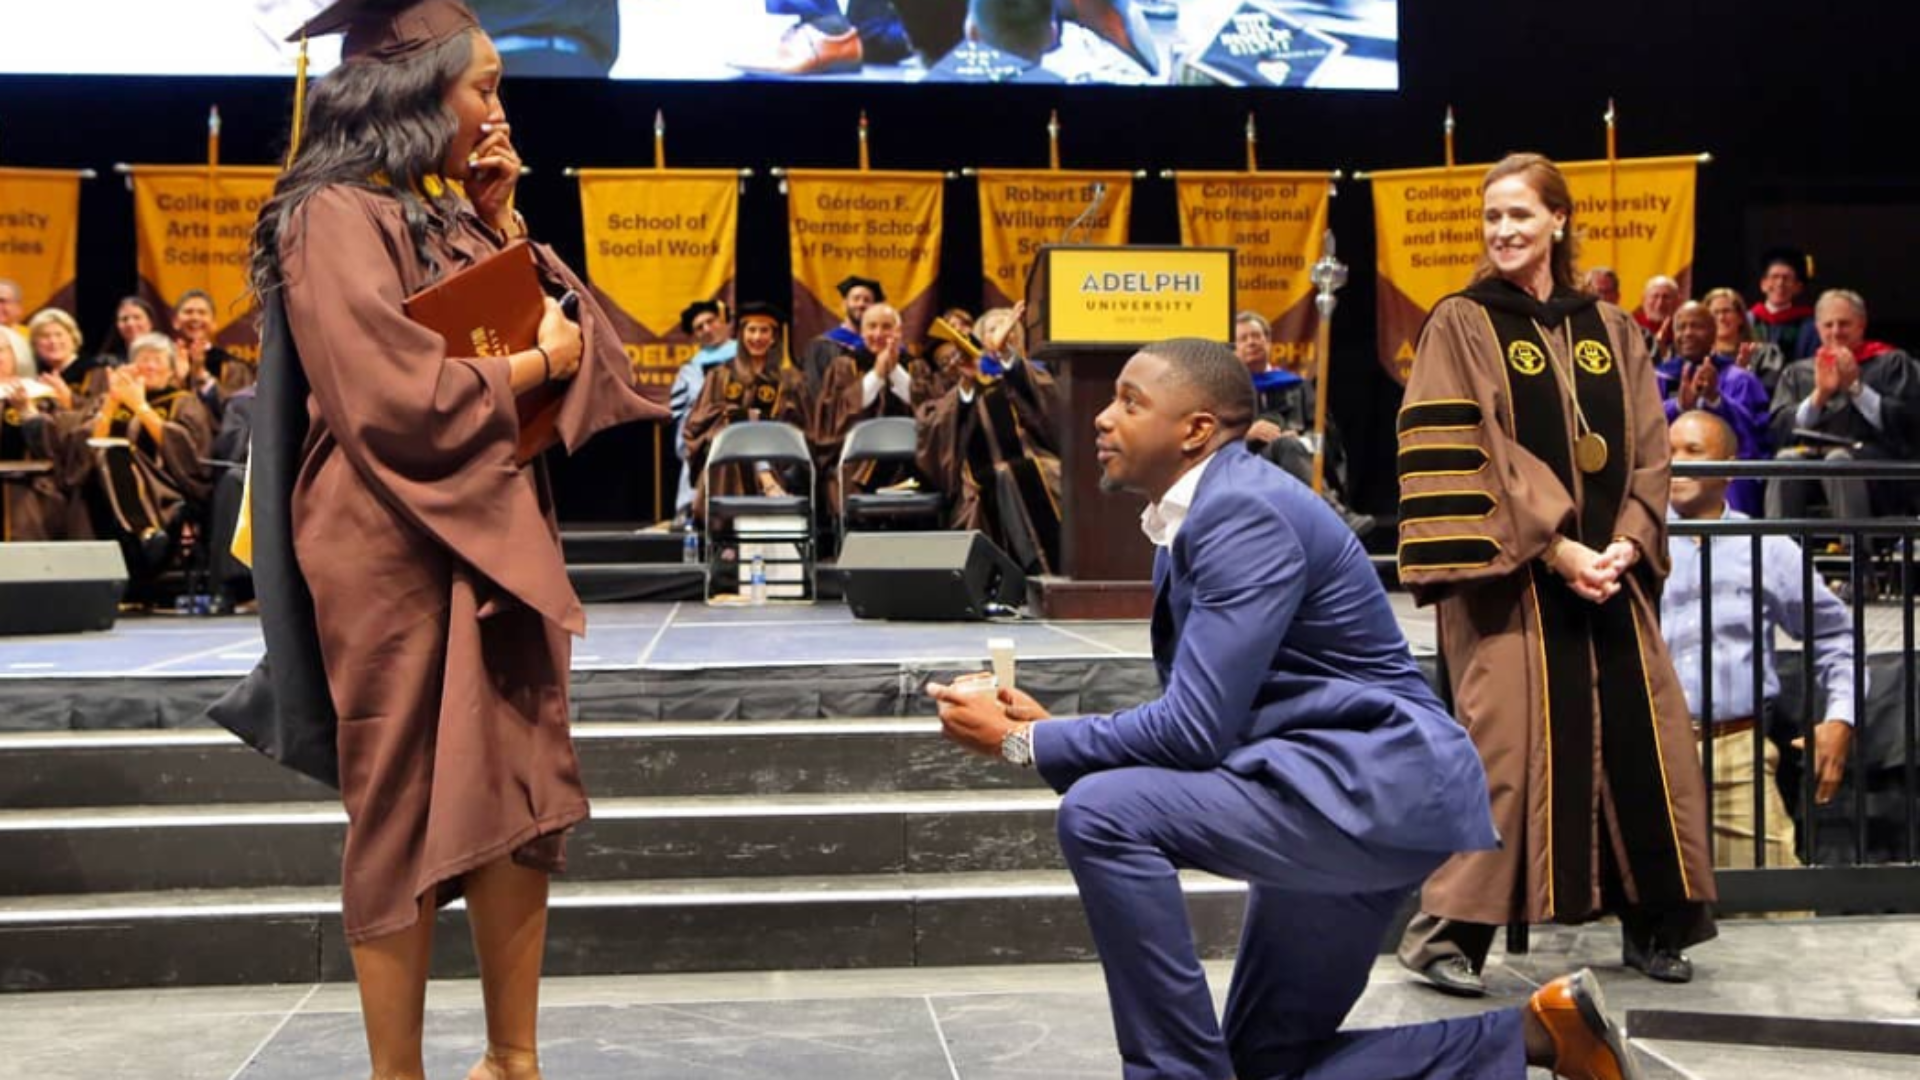 This Man's Graduation Proposal Got A Standing Ovation